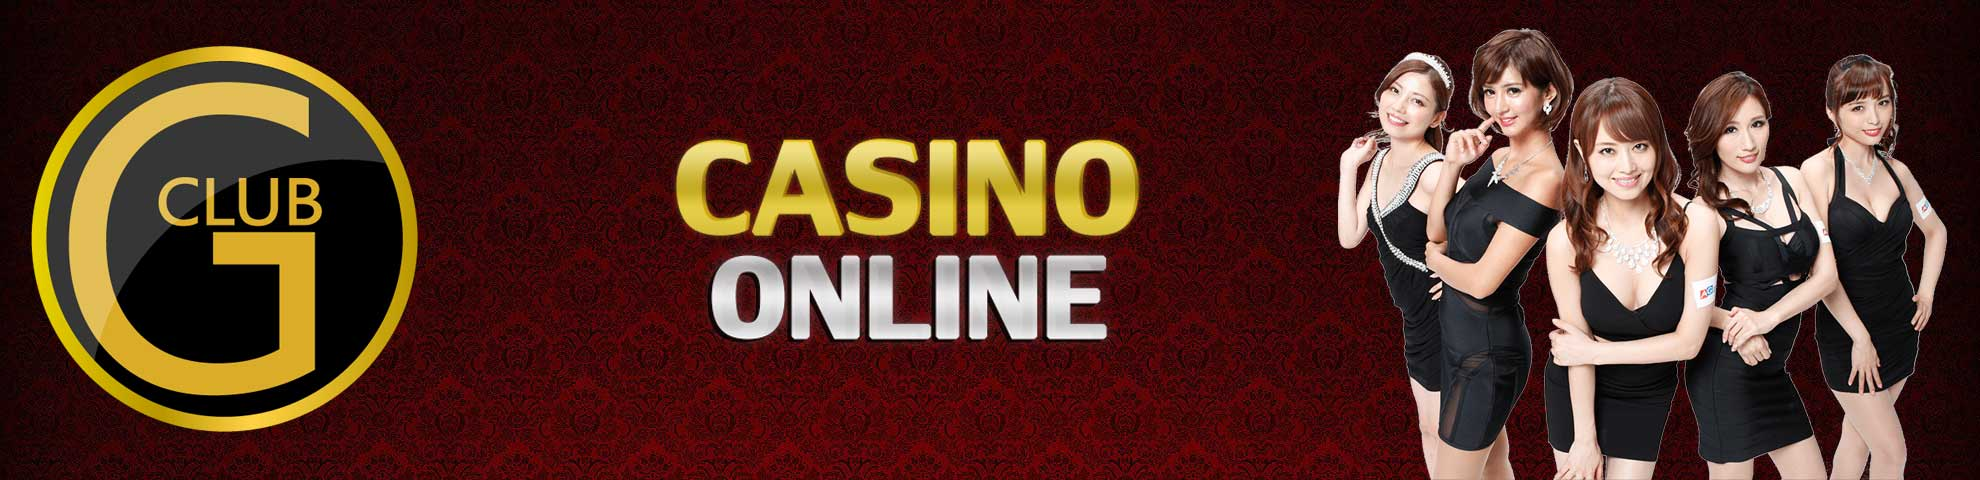 headergclubcasinoonline